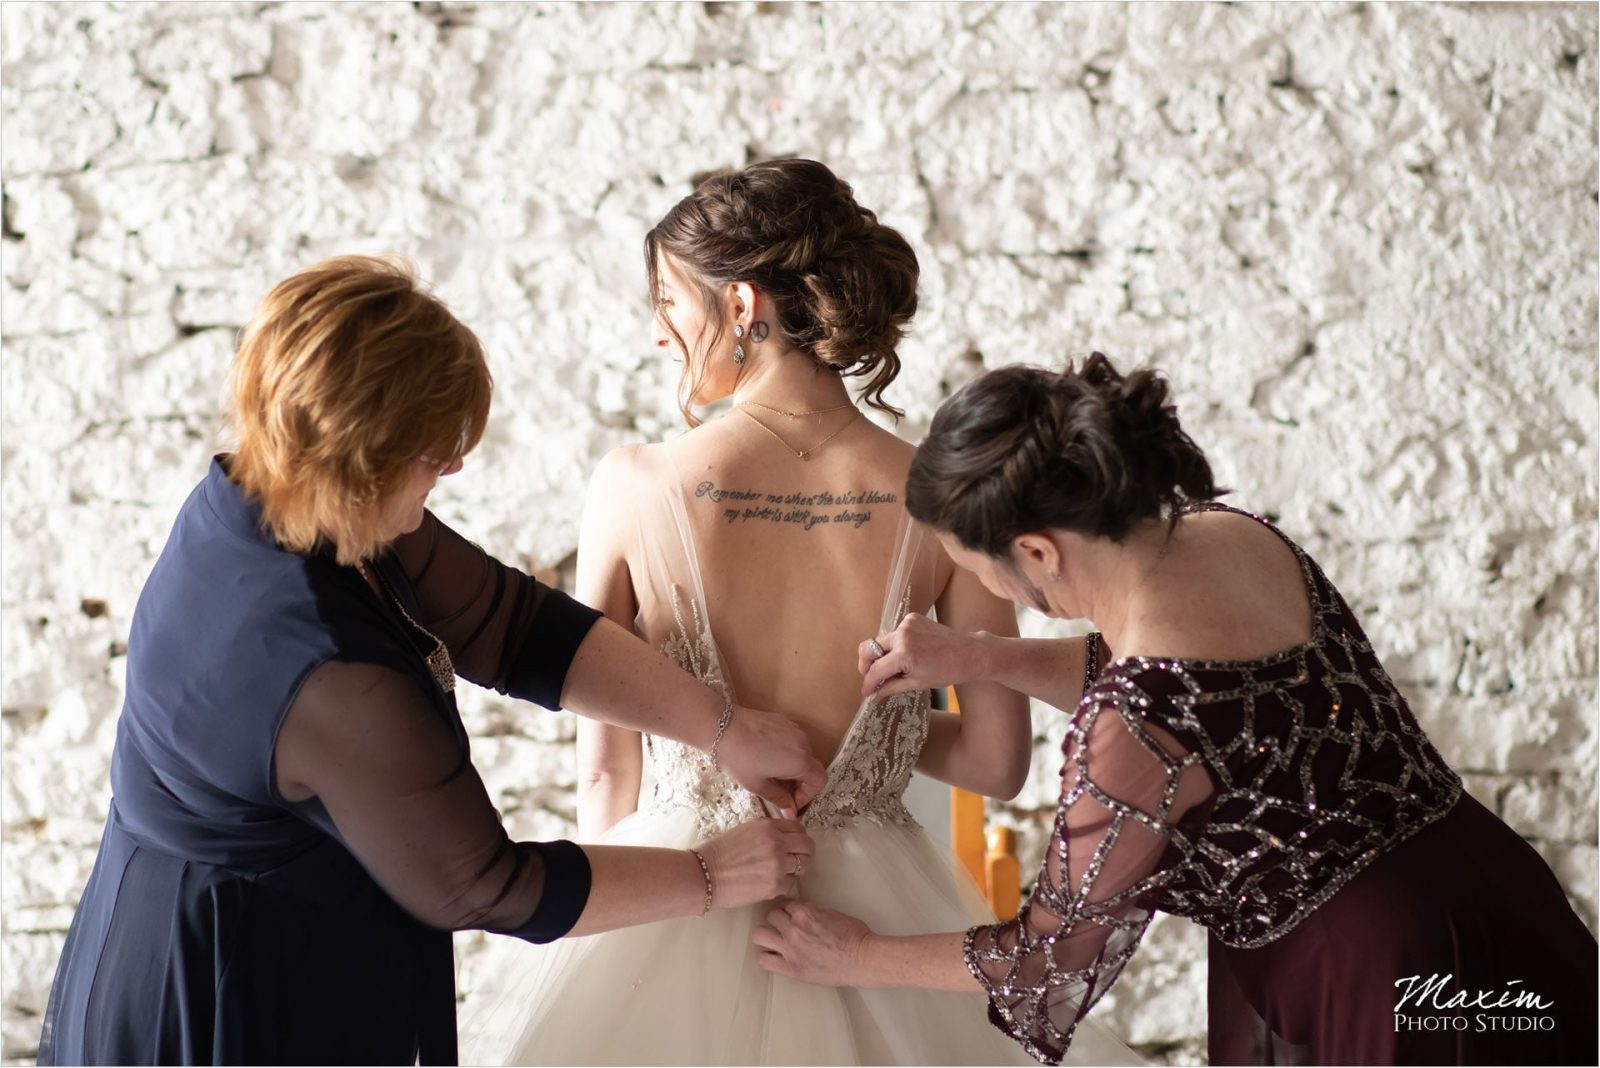 The Mockbee Cincinnati Wedding Bride Preparations